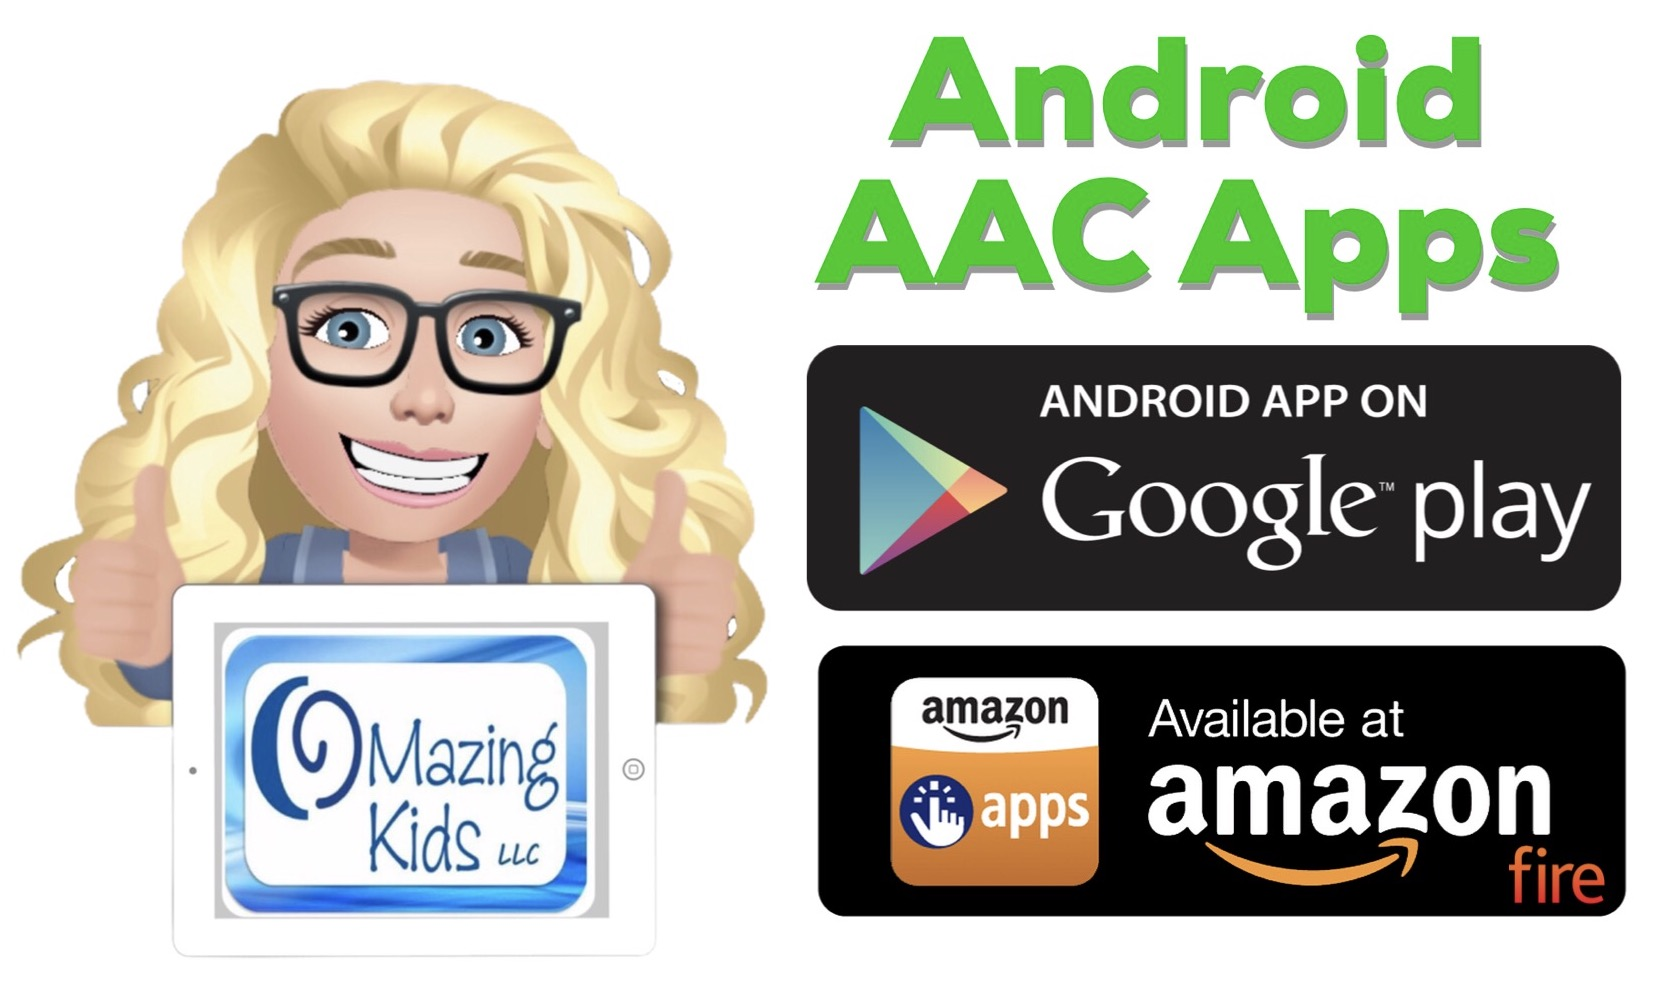 Android AAC apps